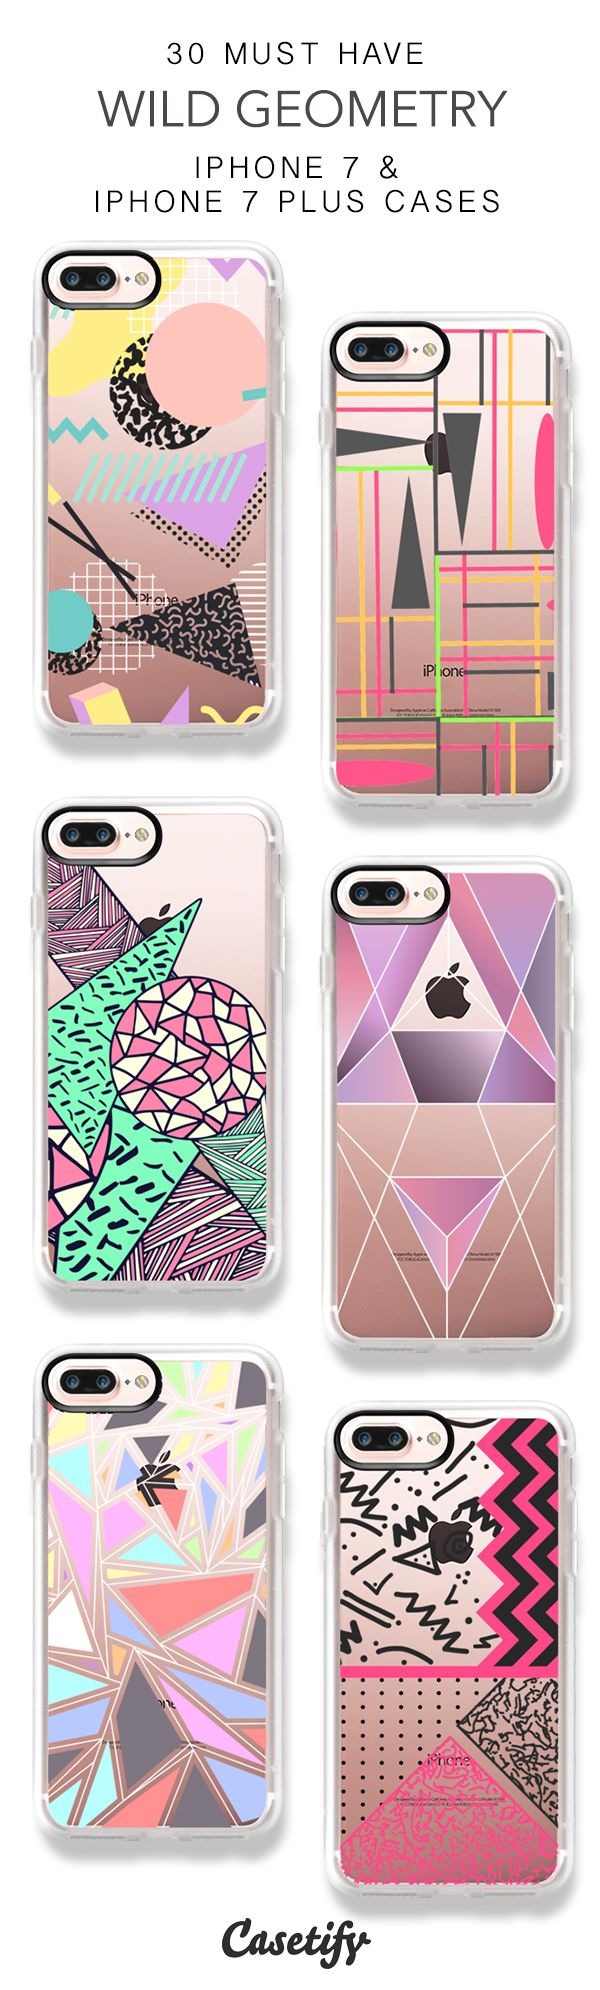 30 Must Have Wild Geometry iPhone 7 Cases and iPhone 7 Plus Cases. More Pattern iPhone case here > https://www.casetify.com/collections/top_100_designs#/?vc=bbc5Mkpvz3